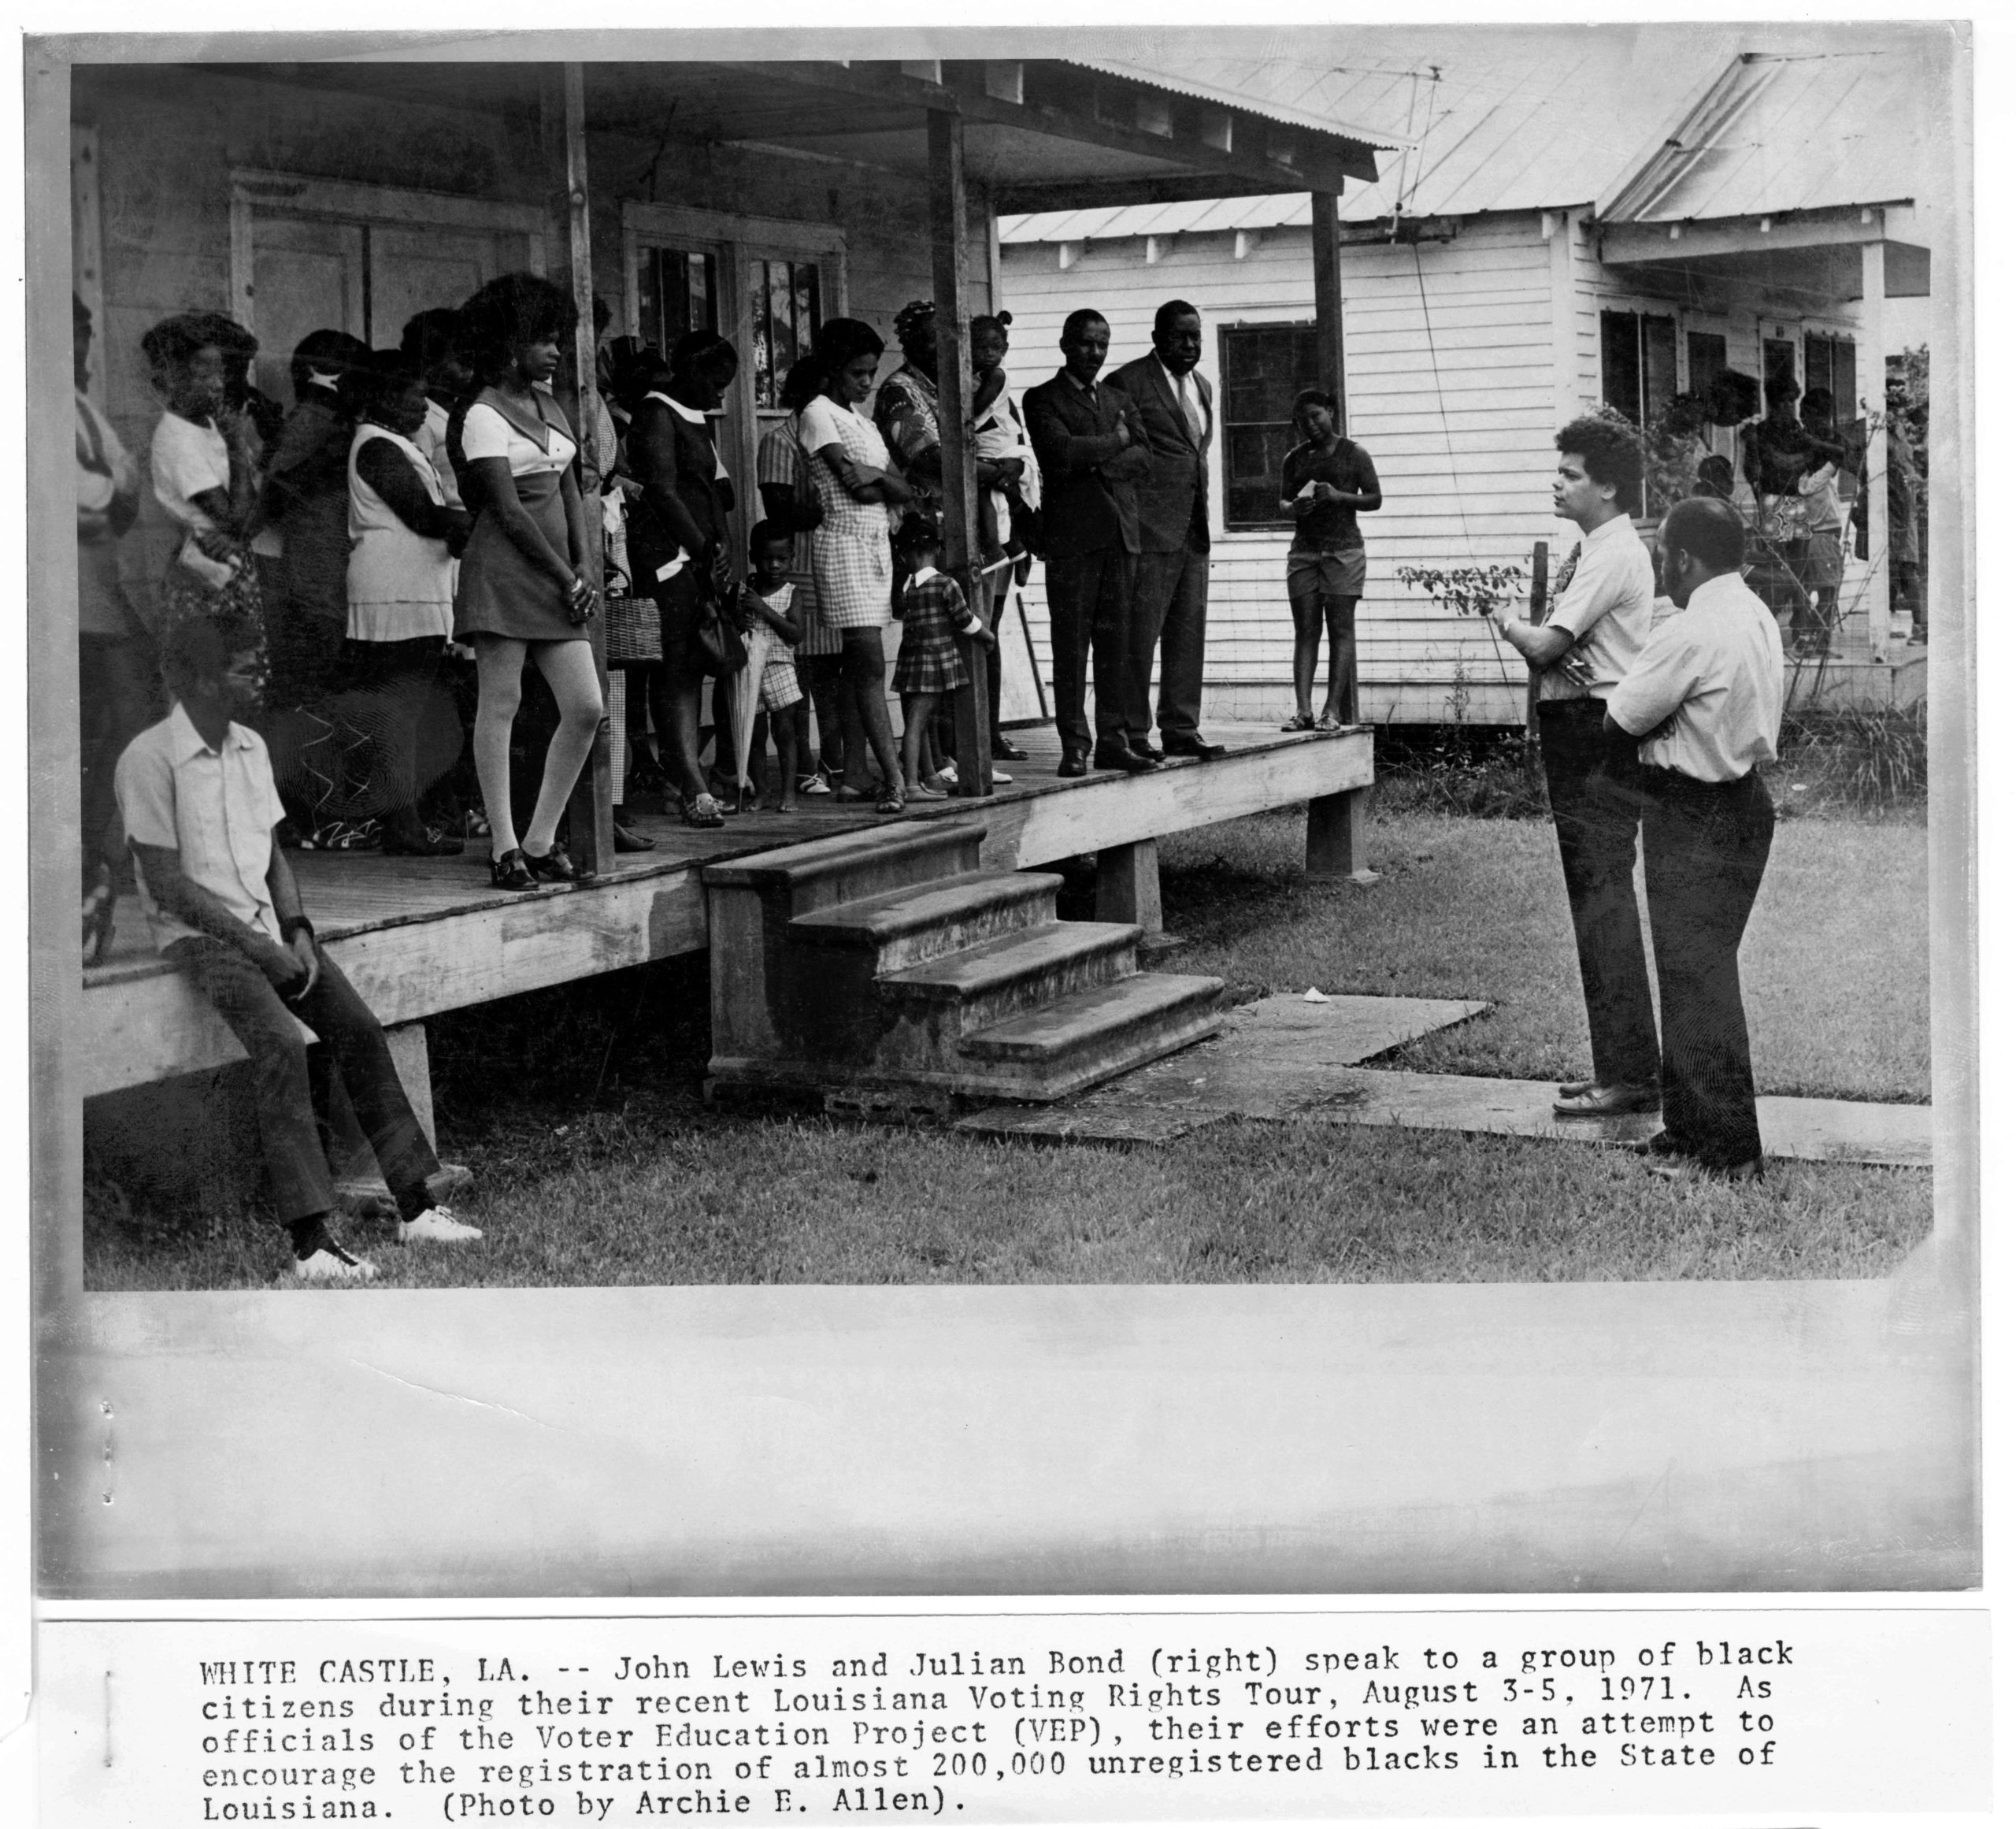 John Lewis and Julian Bond speak to group about voting rights,August, 1971, Allen, Archie E.